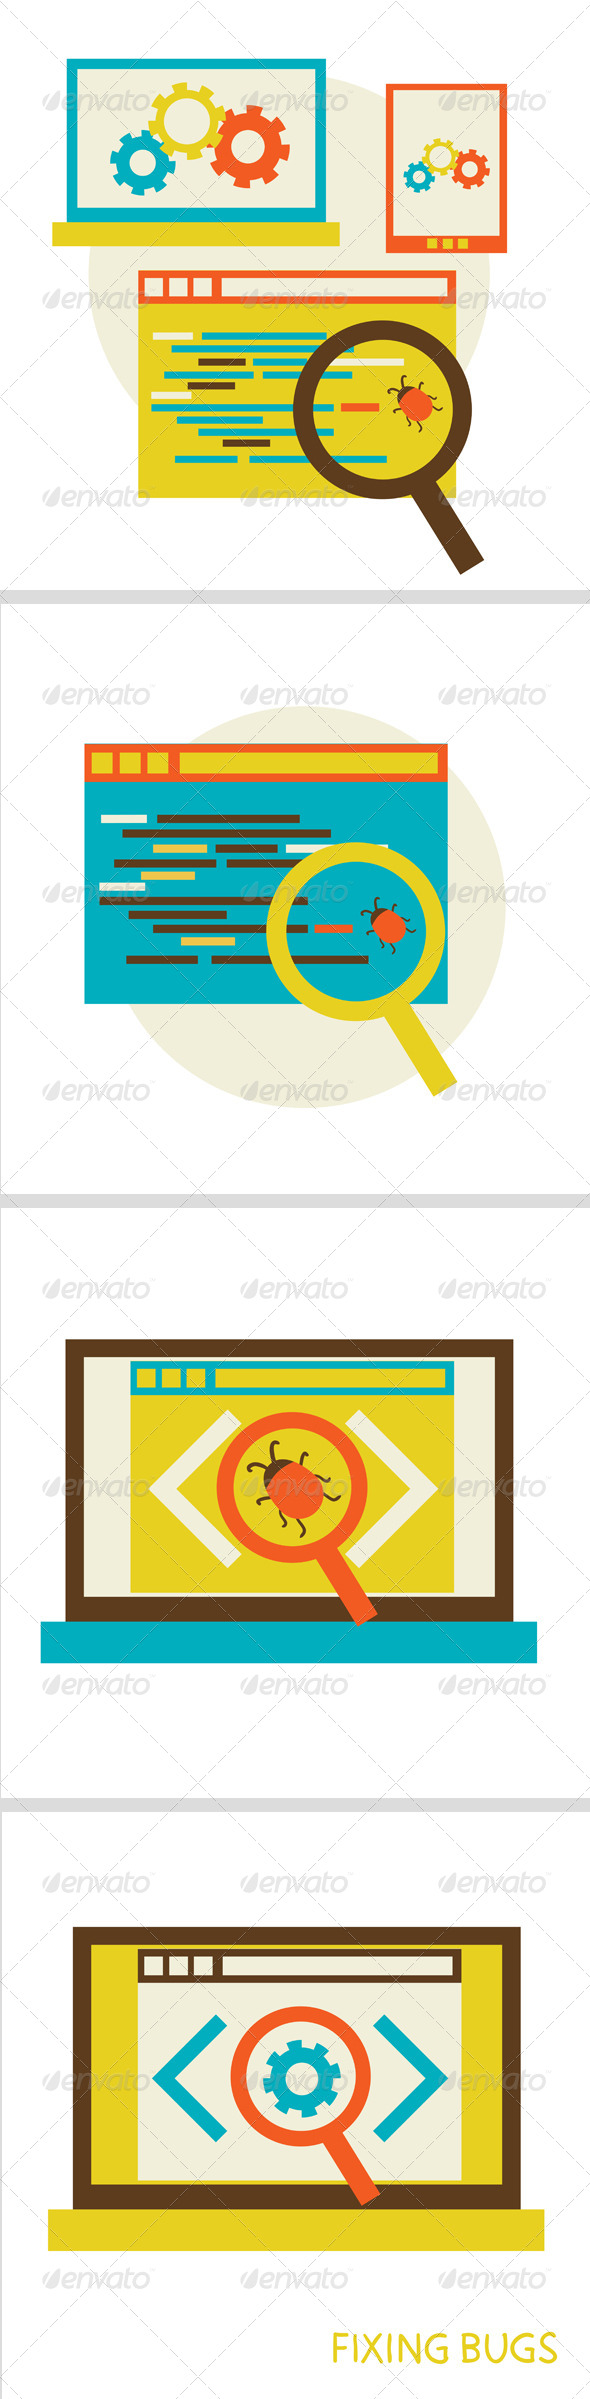 GraphicRiver Process of Fixing Bugs 6711890